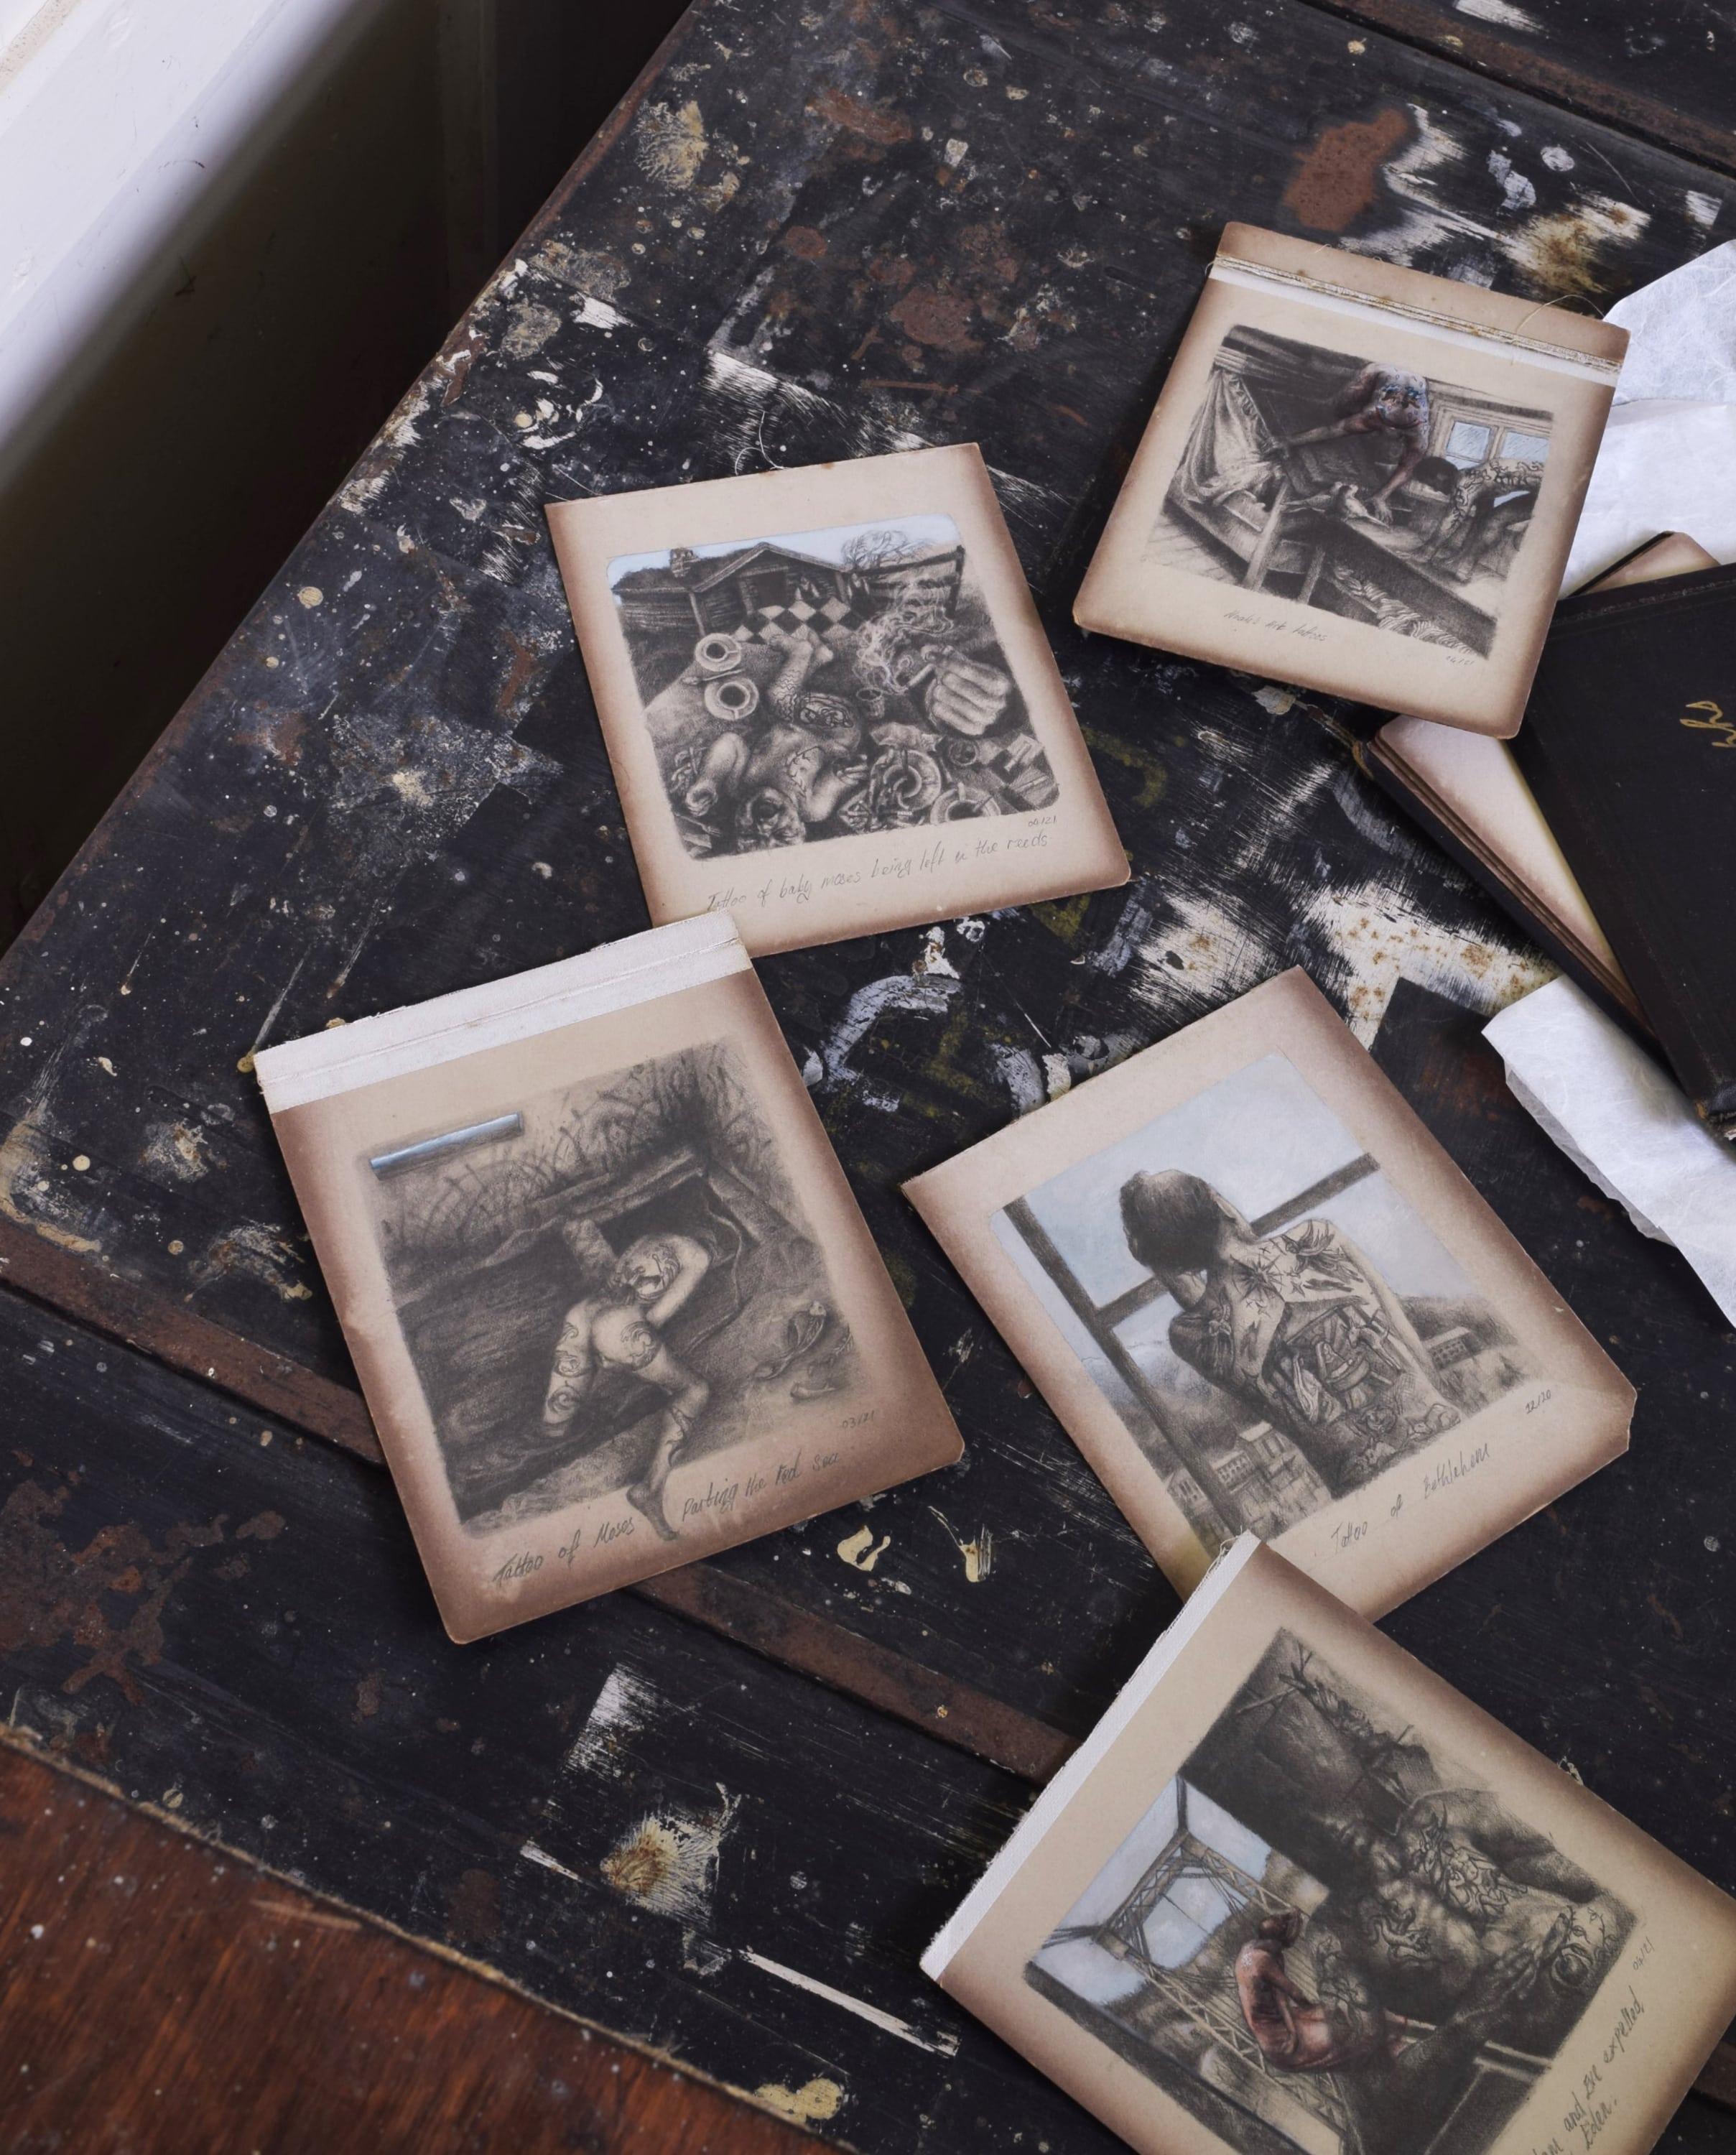 A series of five small drawings and an old photo album are scattered across a trunk, in the back room of a church.